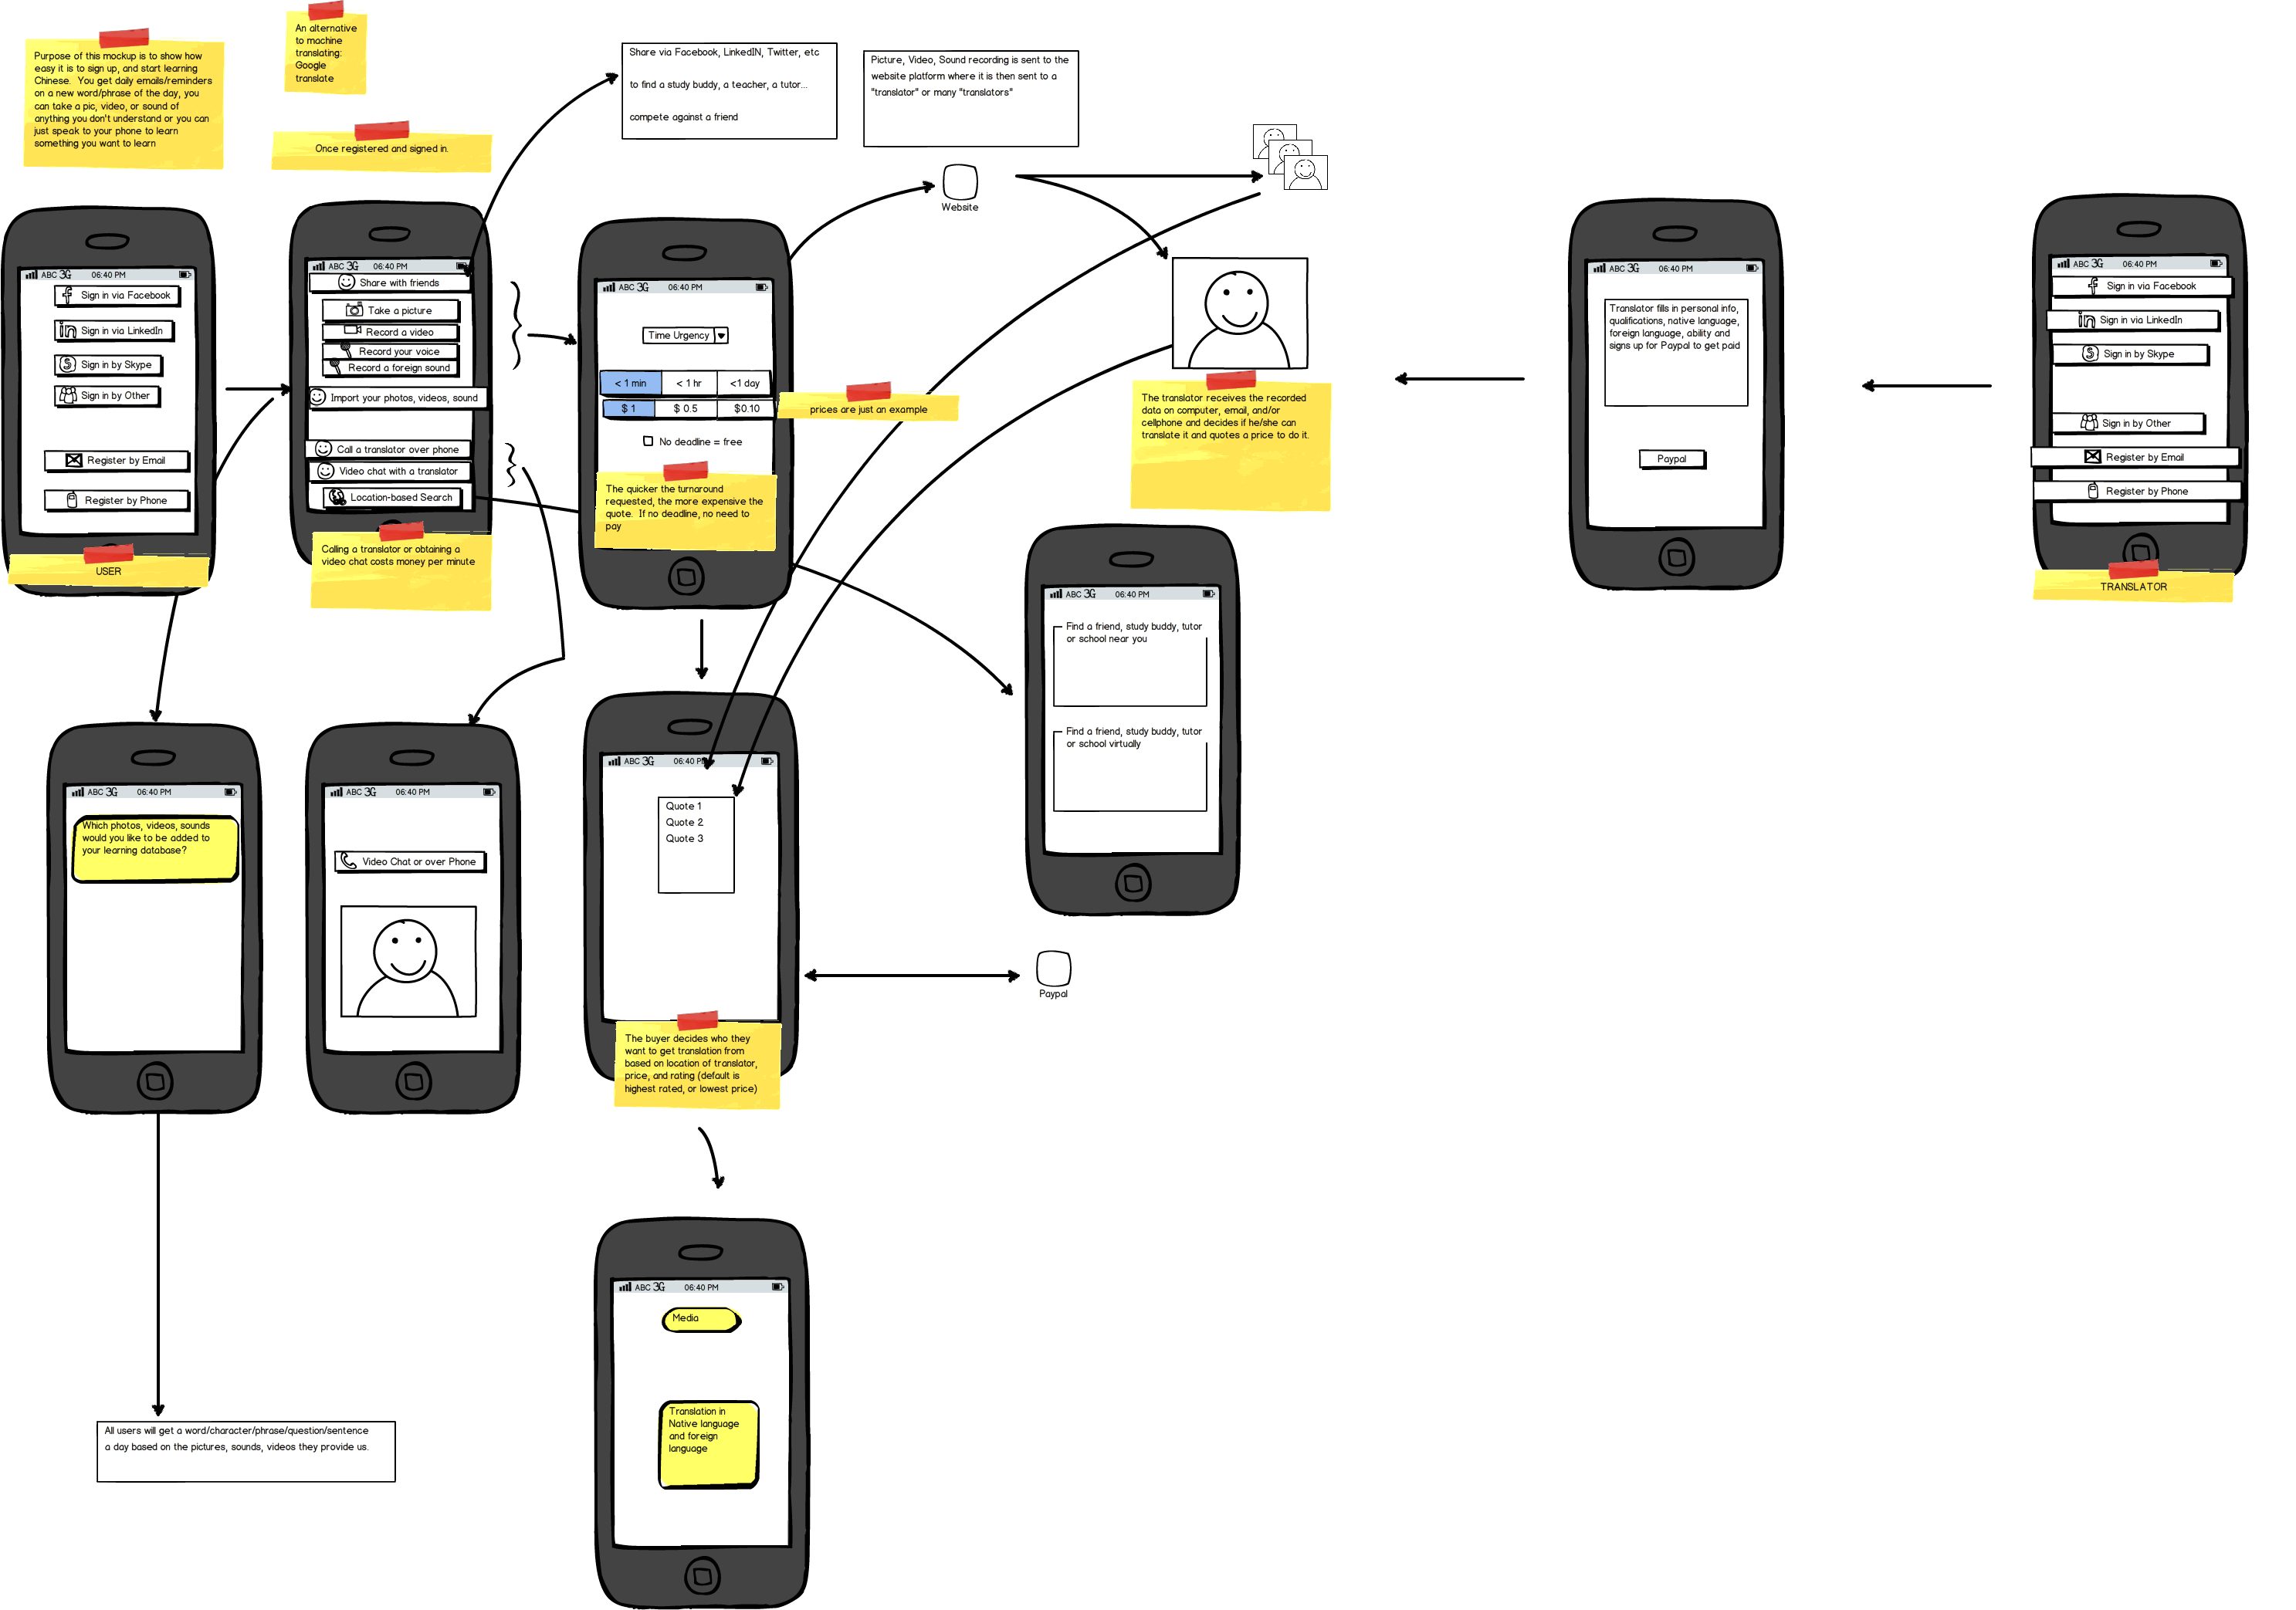 Building an app to help people learn Chinese and Chinese characters - image 3 - student project